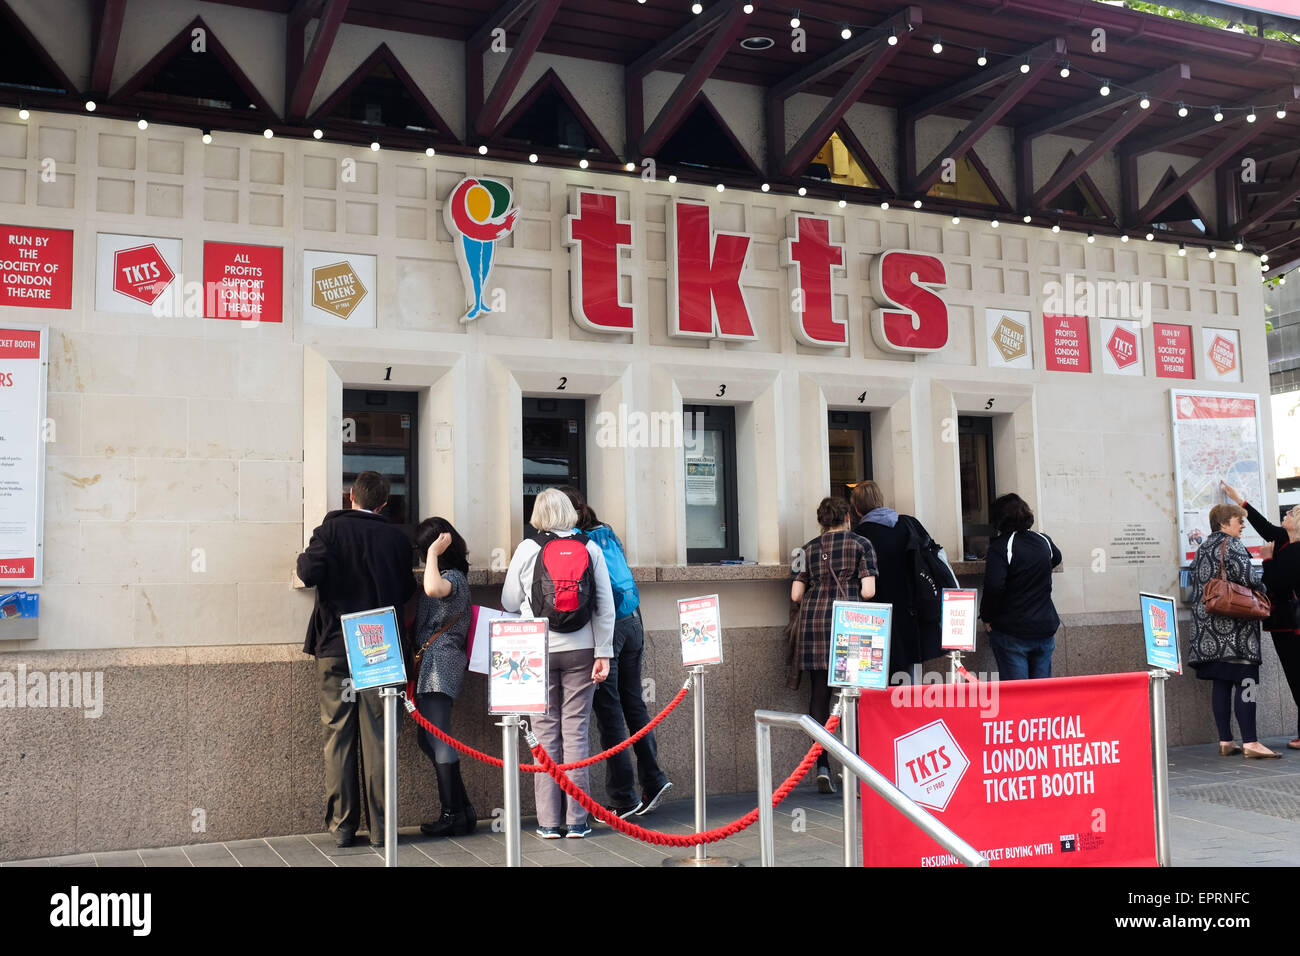 Leicester Square theatre ticket booth. - Stock Image